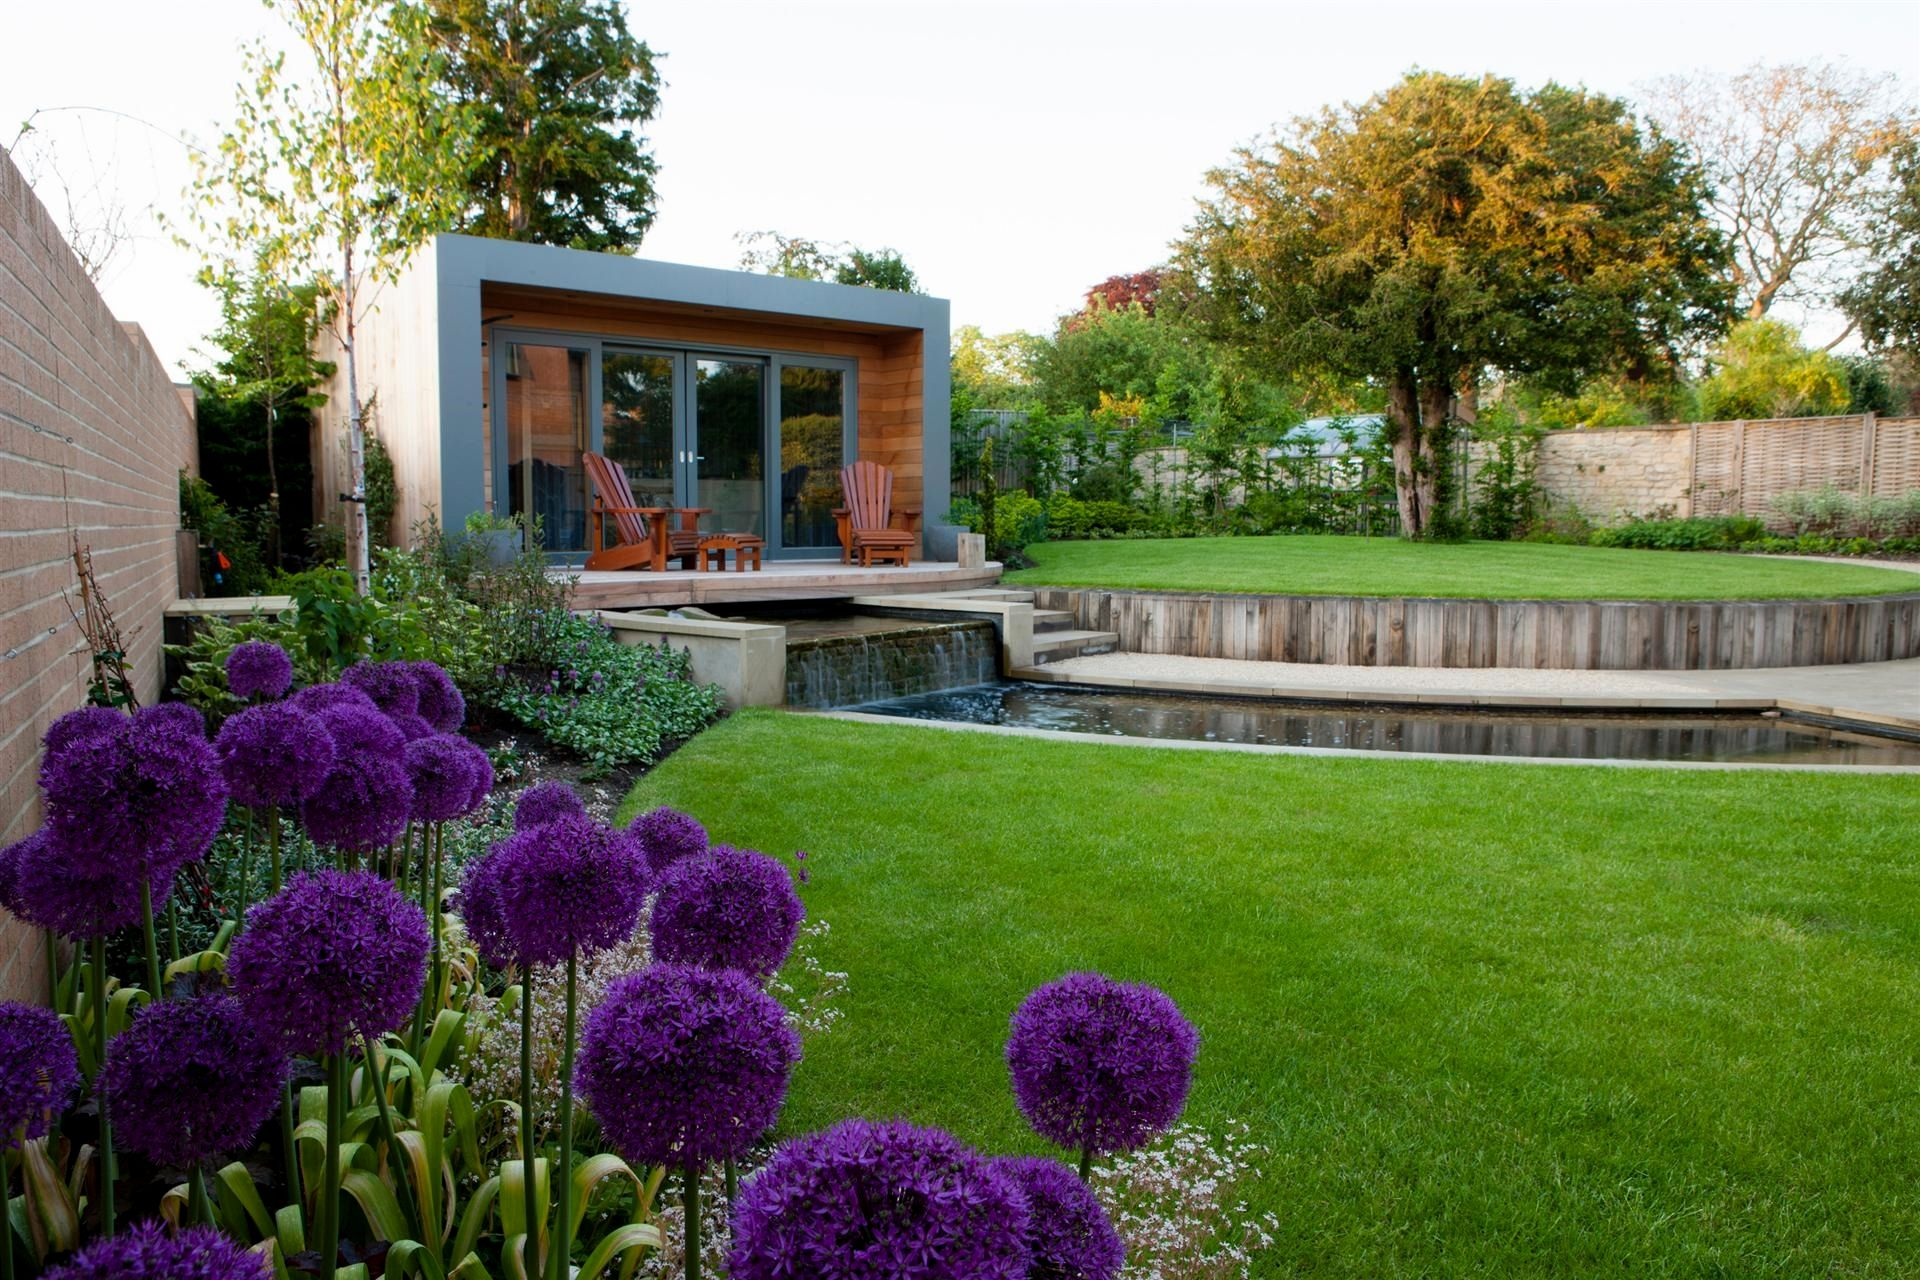 garden design magazine uk | English garden design, Garden ...